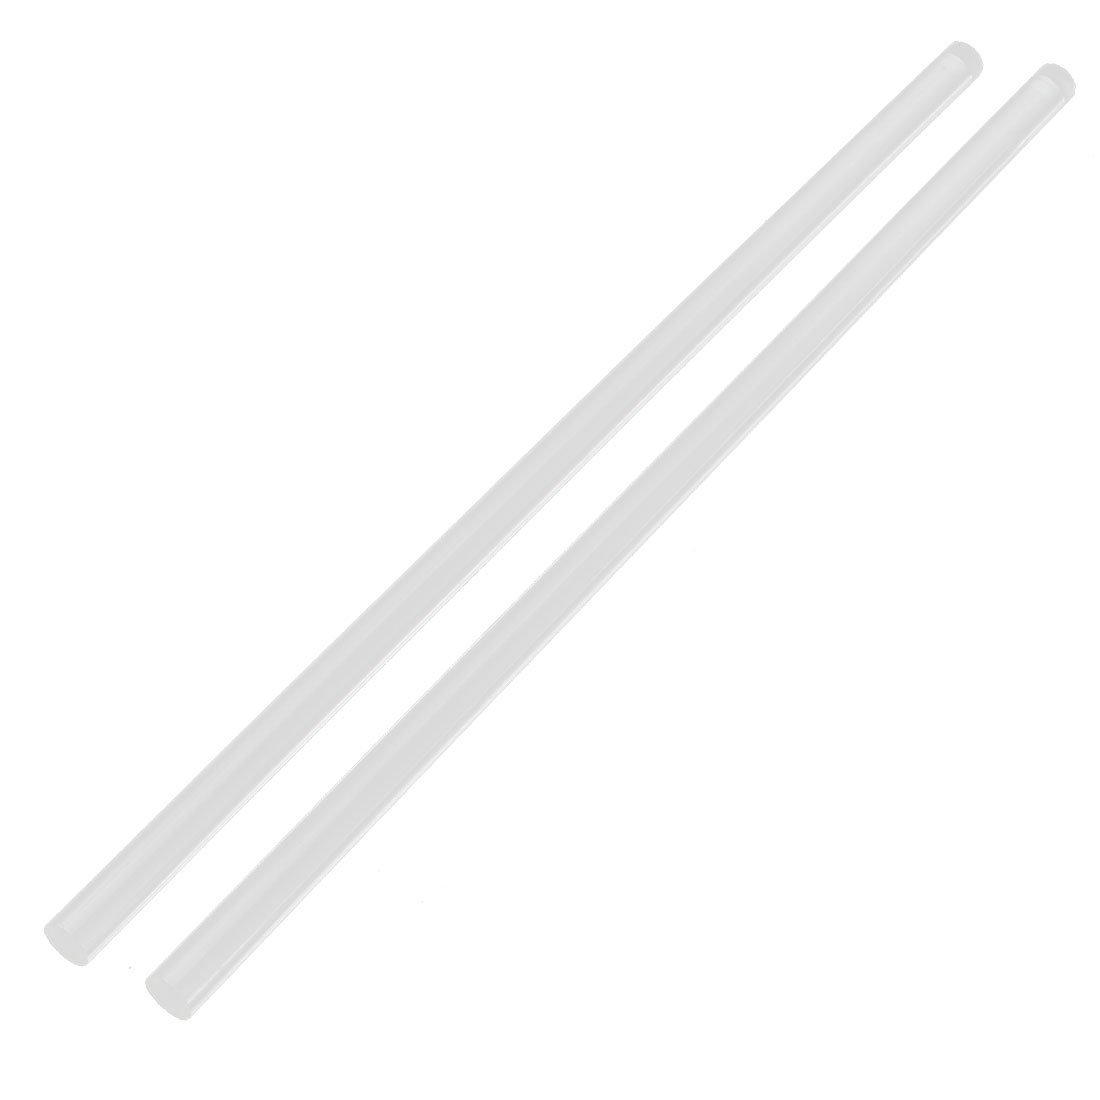 "Hot sale2Pcs 10mm Clear Round Perspex Acrylic Bar PMMA Extruded Rod 12"" Length(China (Mainland))"